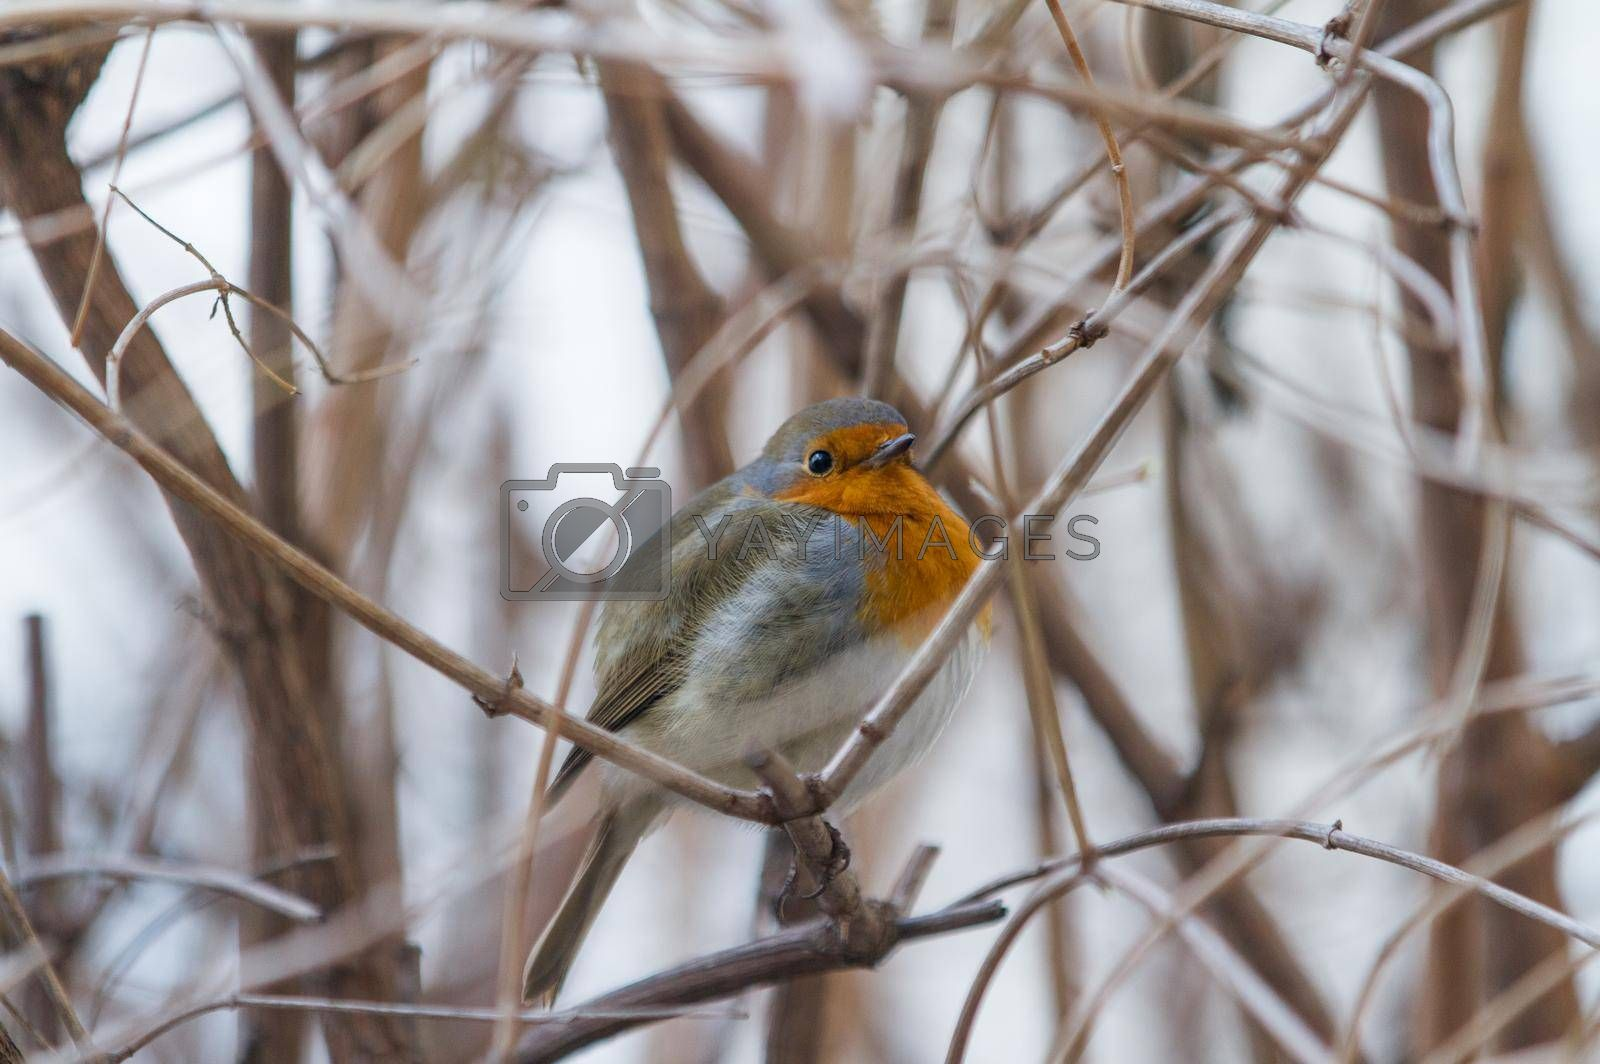 Royalty free image of A bird on branches without leaves. The robin sits on the branches of the bush. The bird hides in the bushes. by Jannetta